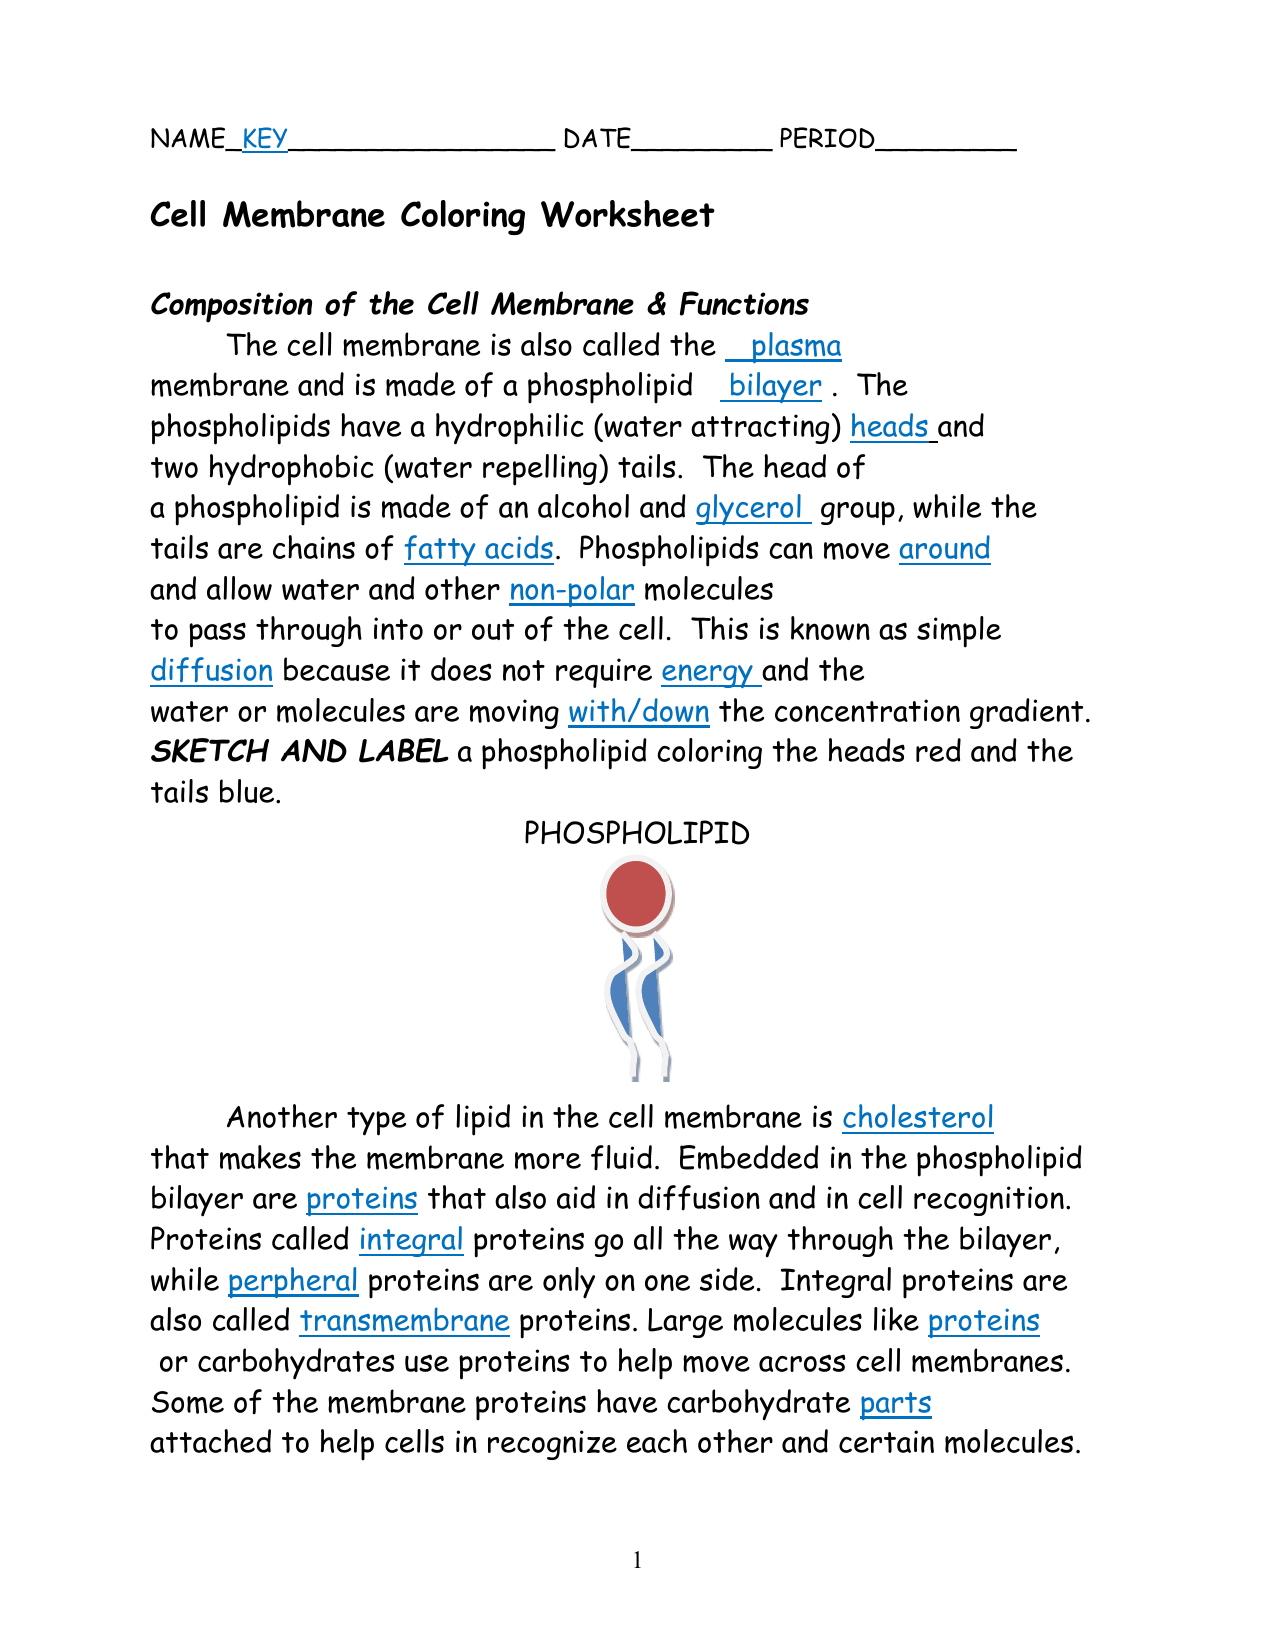 Cell Membrane Coloring Worksheet Key